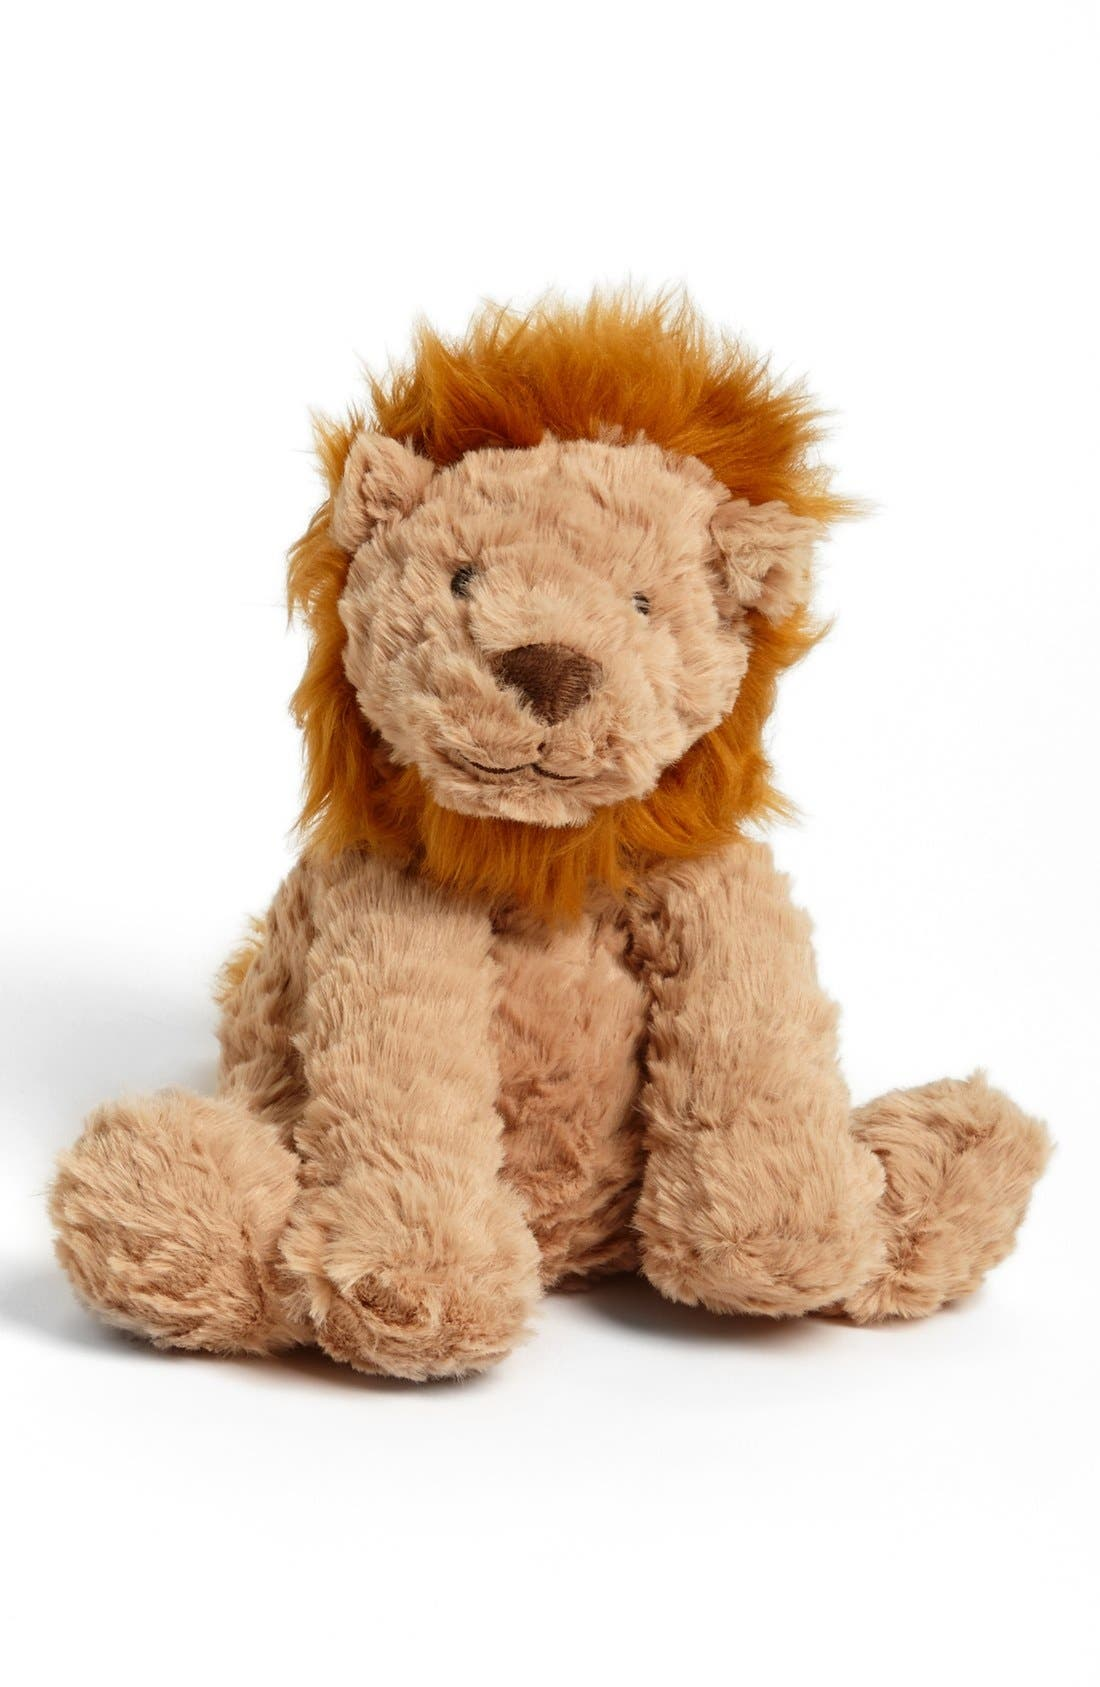 Main Image - Jellycat 'Fuddlewuddle Lion' Stuffed Animal